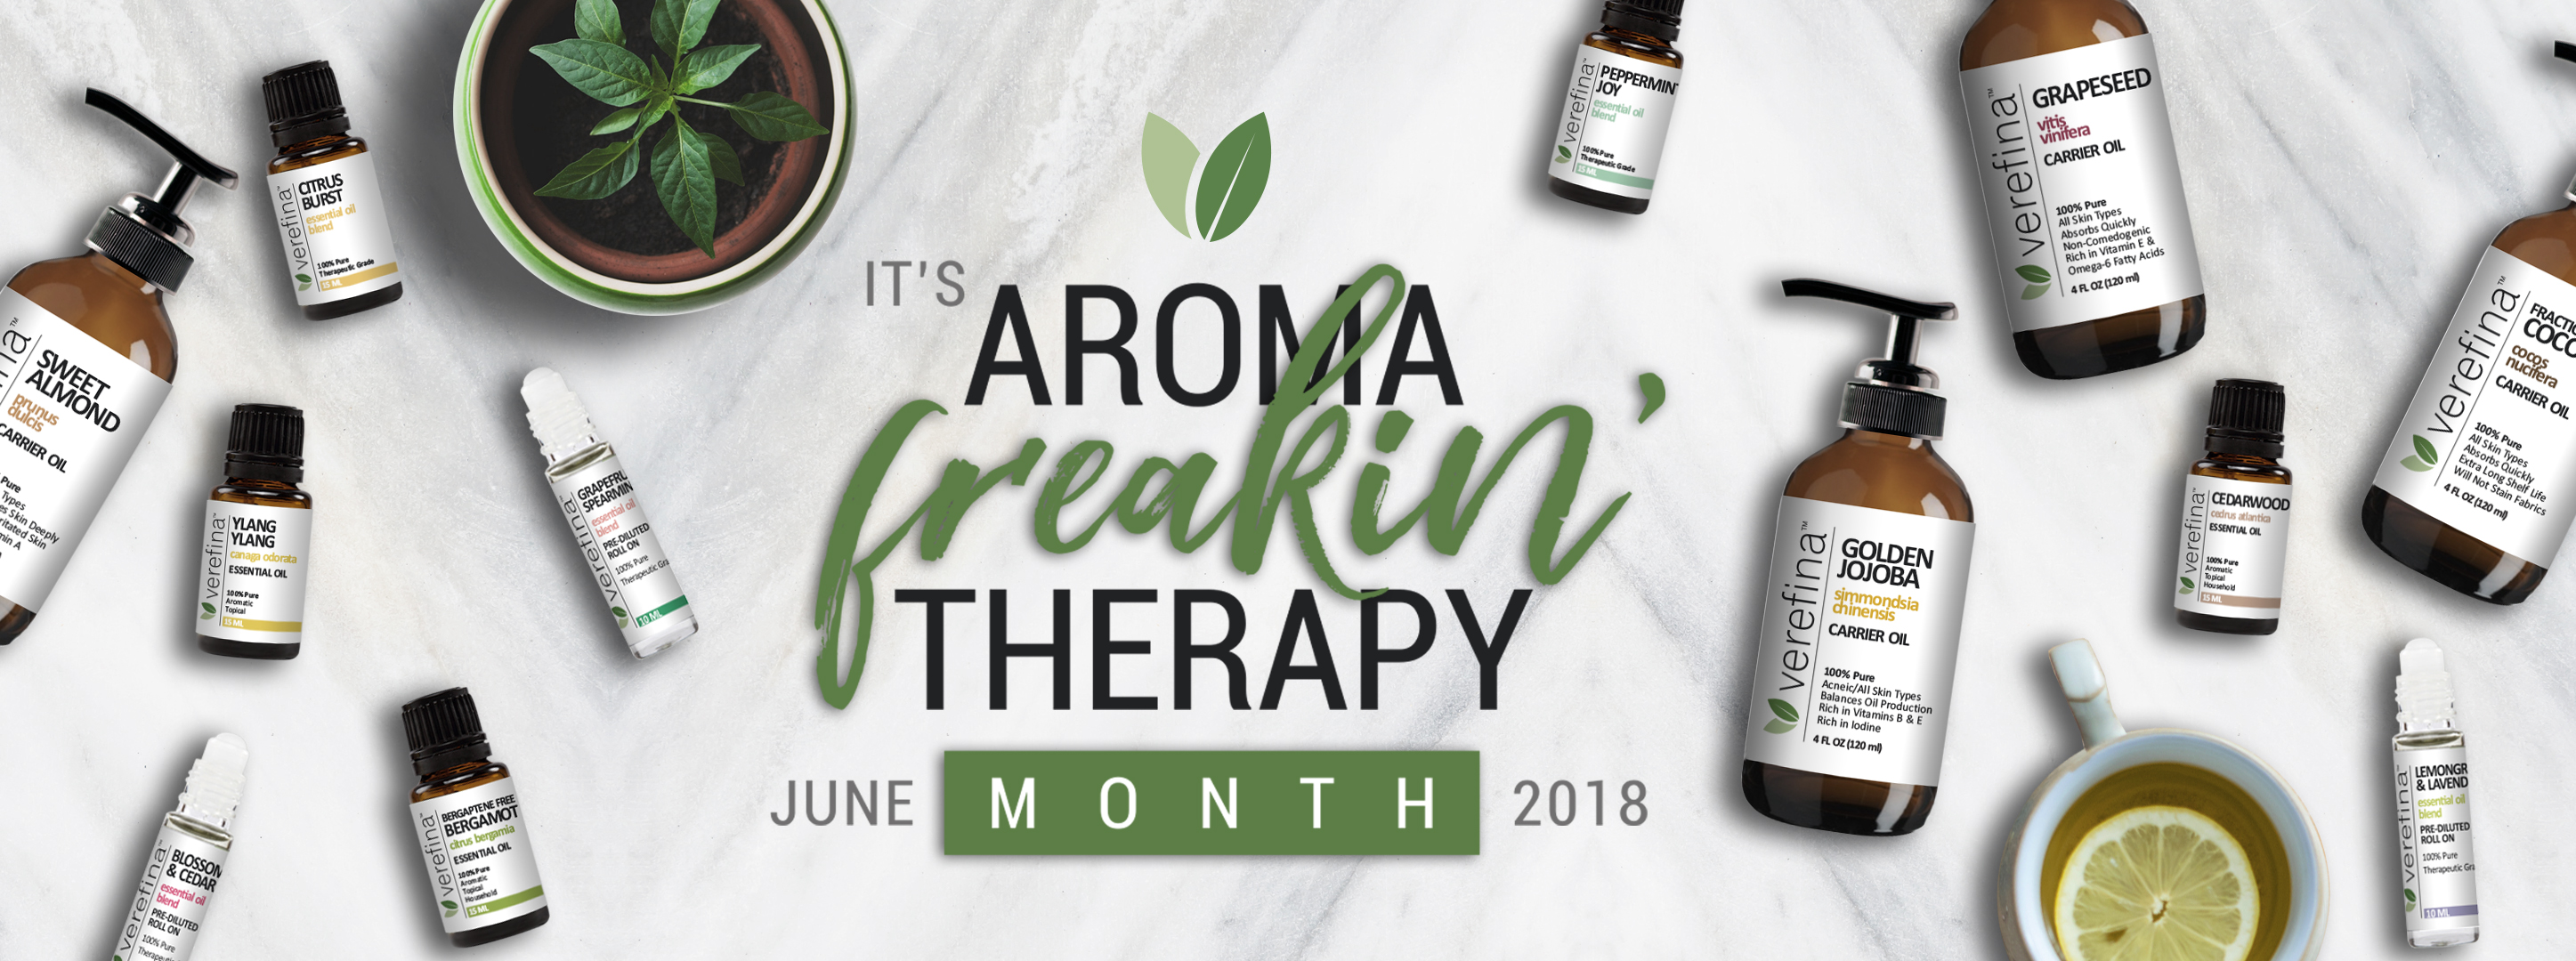 Aroma Freakin' Therapy Month